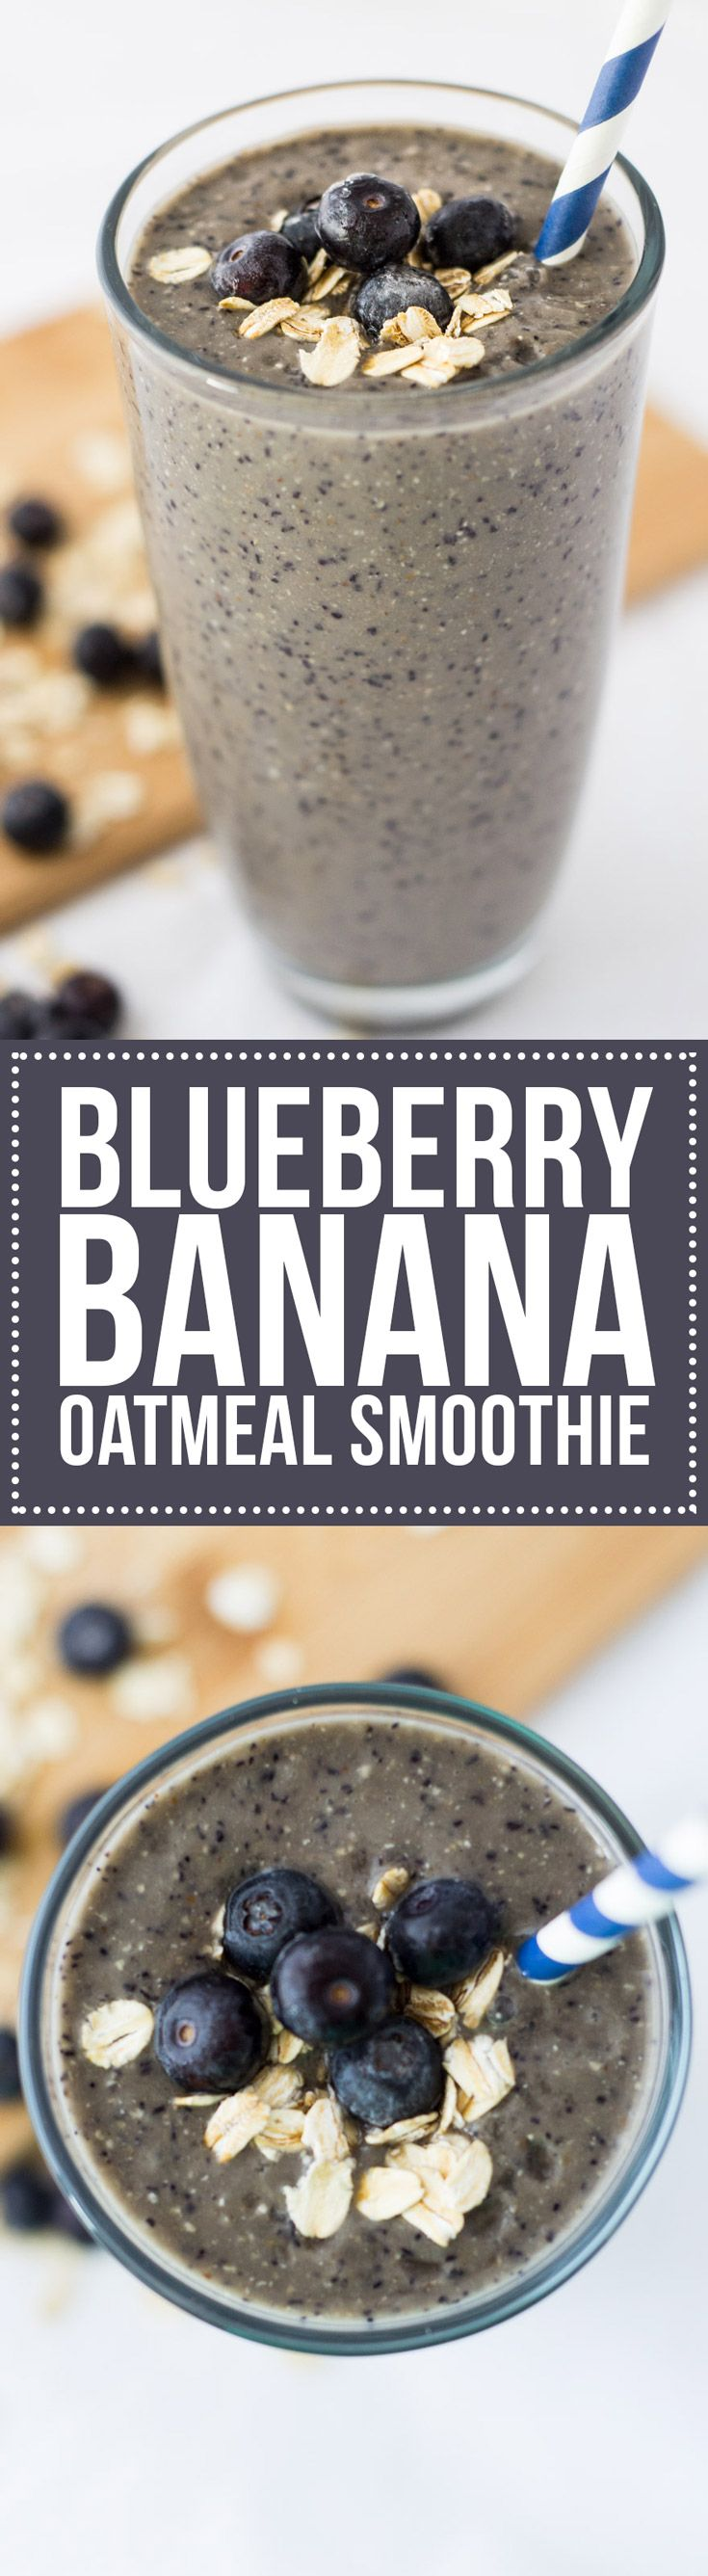 This Blueberry Banana Oatmeal Smoothie is the perfect breakfast smoothie recipe to start the day! With fresh fruit, whole grains and yogurt, it's so good for you!